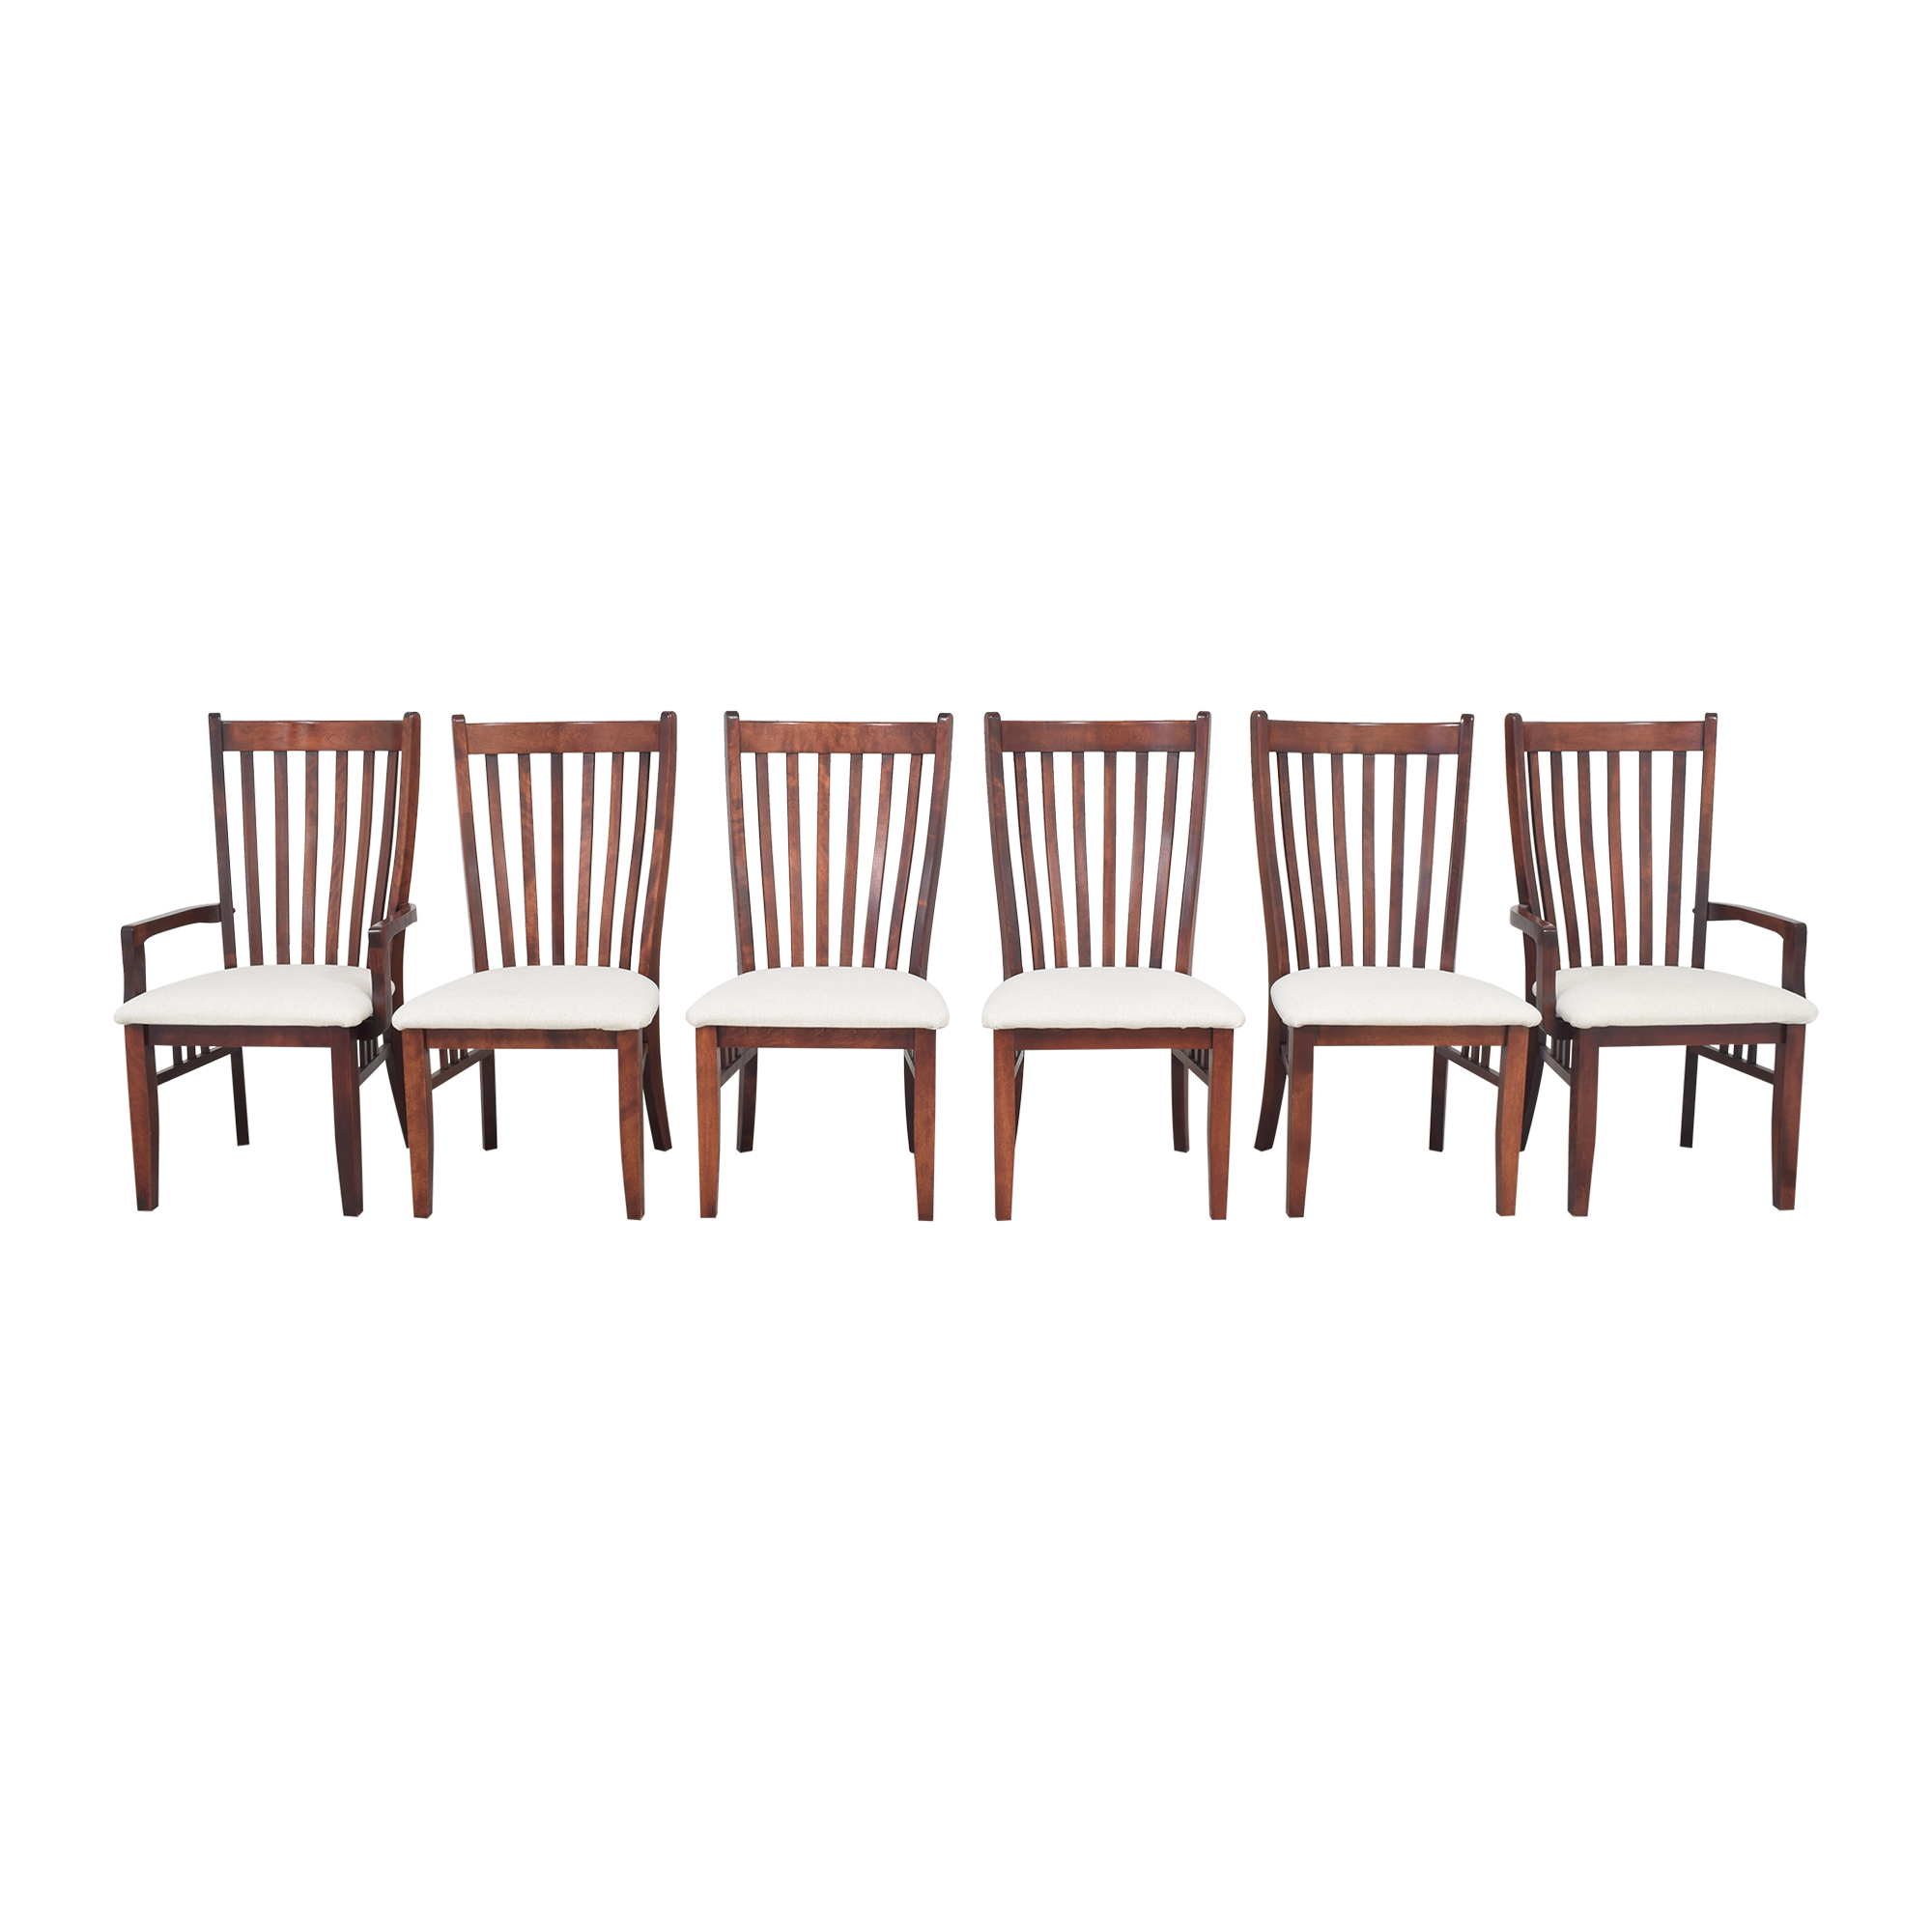 Canadel Canadel Slat Back Dining Chairs dimensions